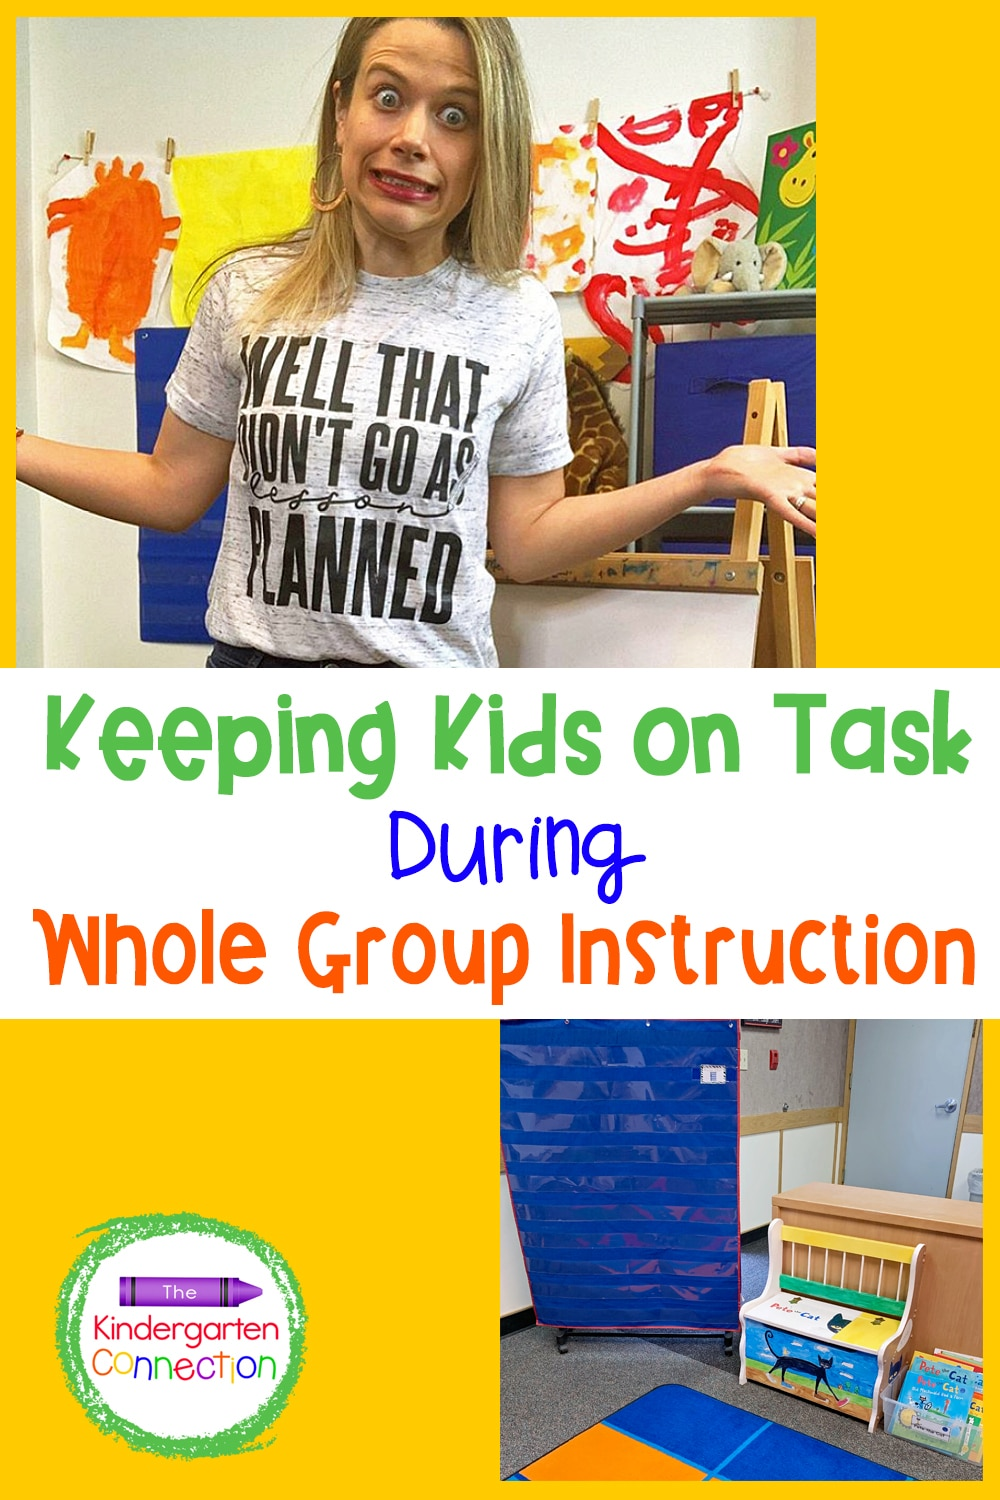 Check out these tips for how to keep kids on task during whole group instruction while still allowing them to feel acknowledged and heard!